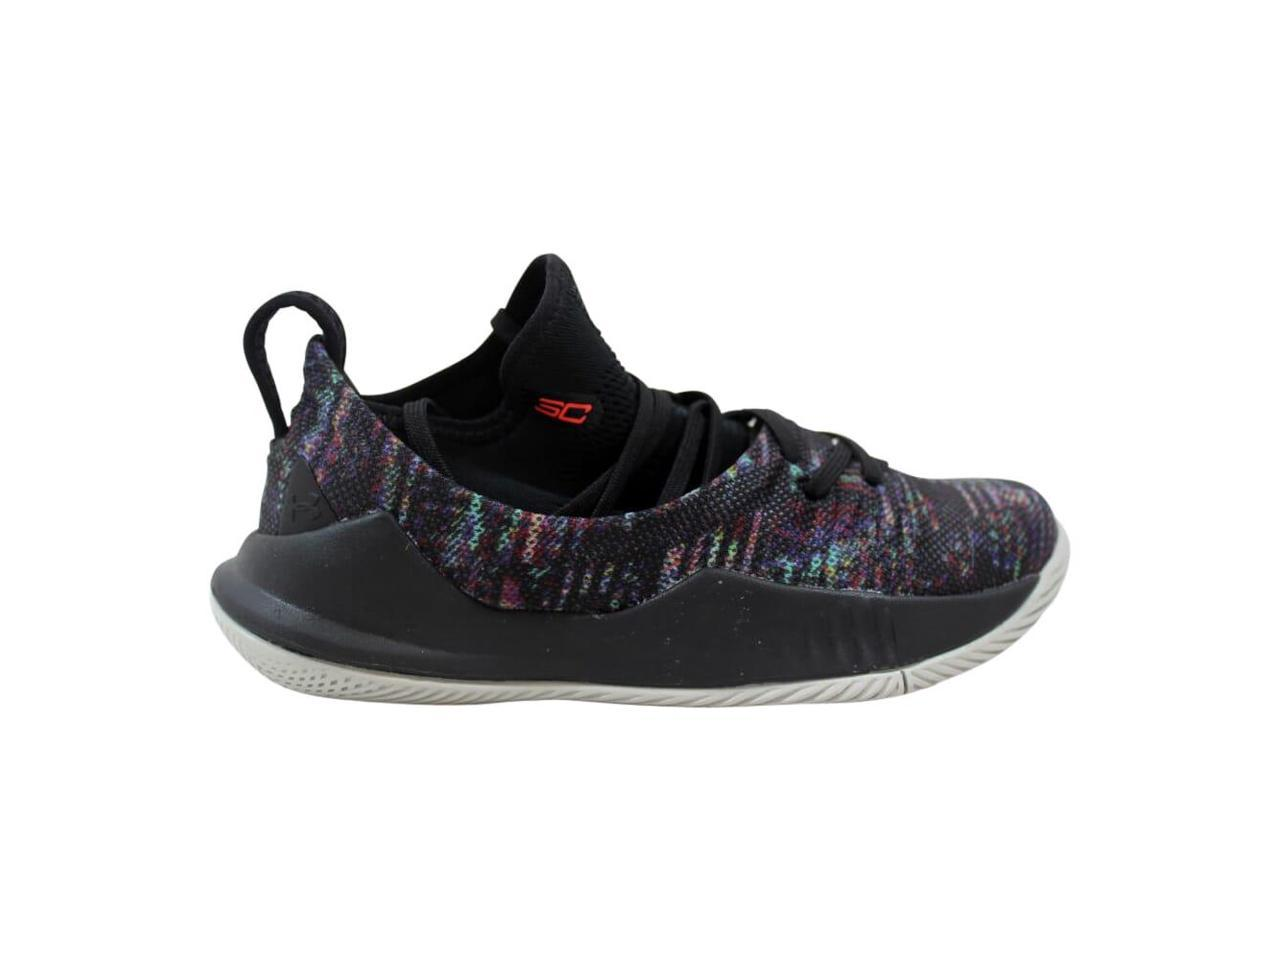 UNDER ARMOUR PS CURRY 5 BOY'S SNEAKER 3020742-005